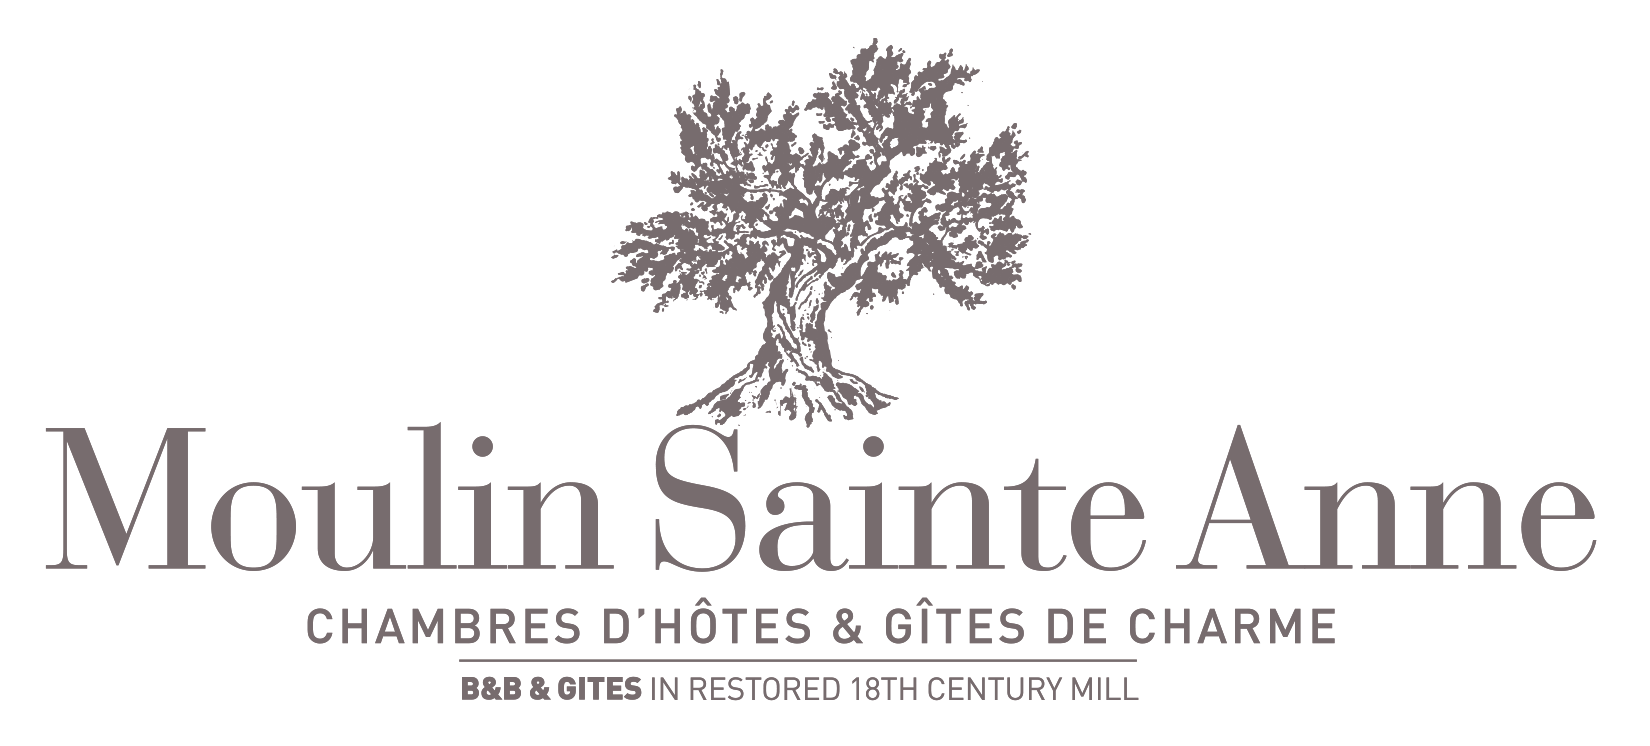 Moulin Sainte Anne - B&B and Gîtes